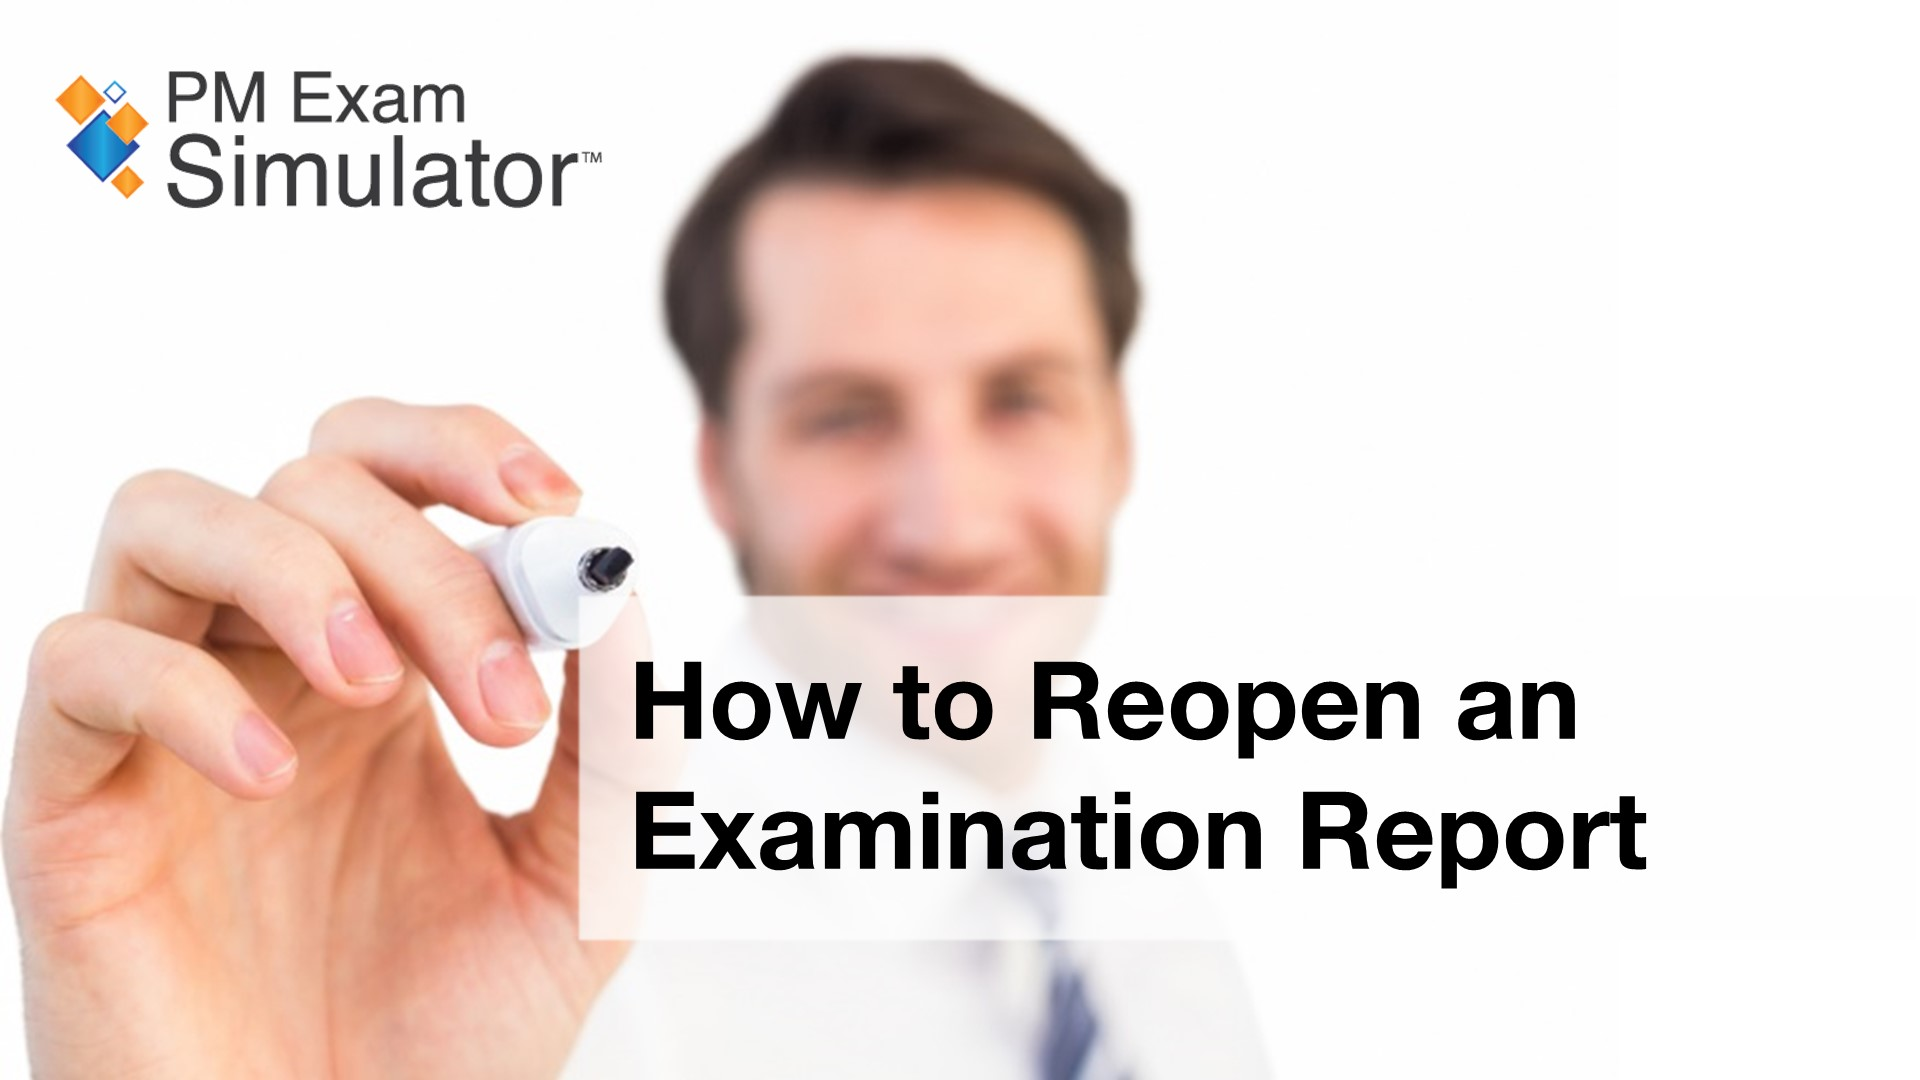 How to Reopen an Examination Report